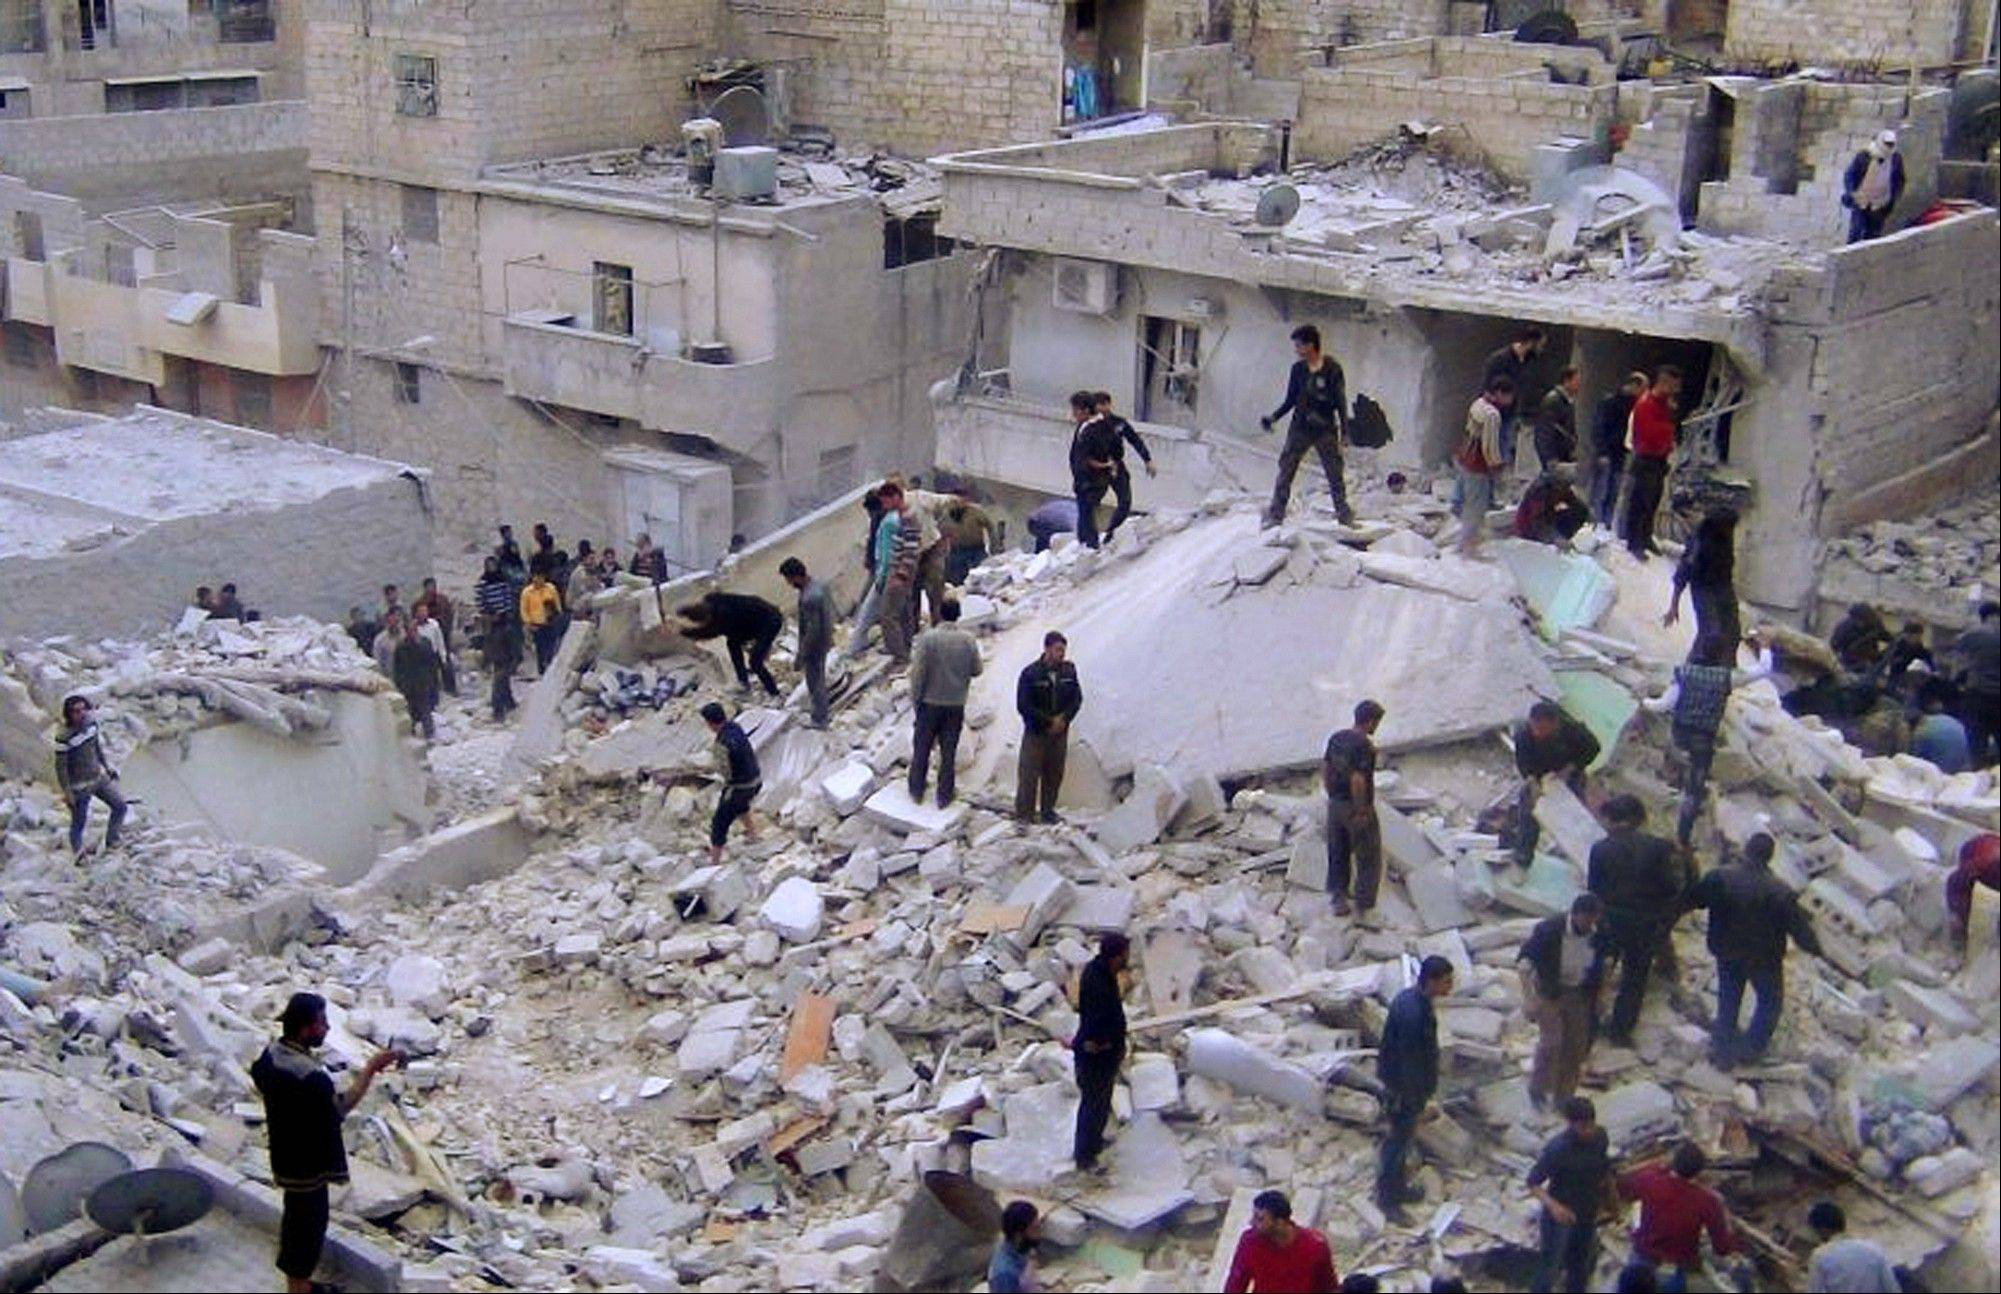 In this citizen journalism image taken on Wednesday, Syrian citizens search for dead bodies on the rubble of damaged buildings that were attacked by Syrian forces airstrikes in Aleppo. Syrian rebels captured one village and parts of others on the edge of the Golan Heights Thursday as fighting closed in on the strategic plateau that Israel captured from Syria in 1967 and later annexed, activists and officials said.